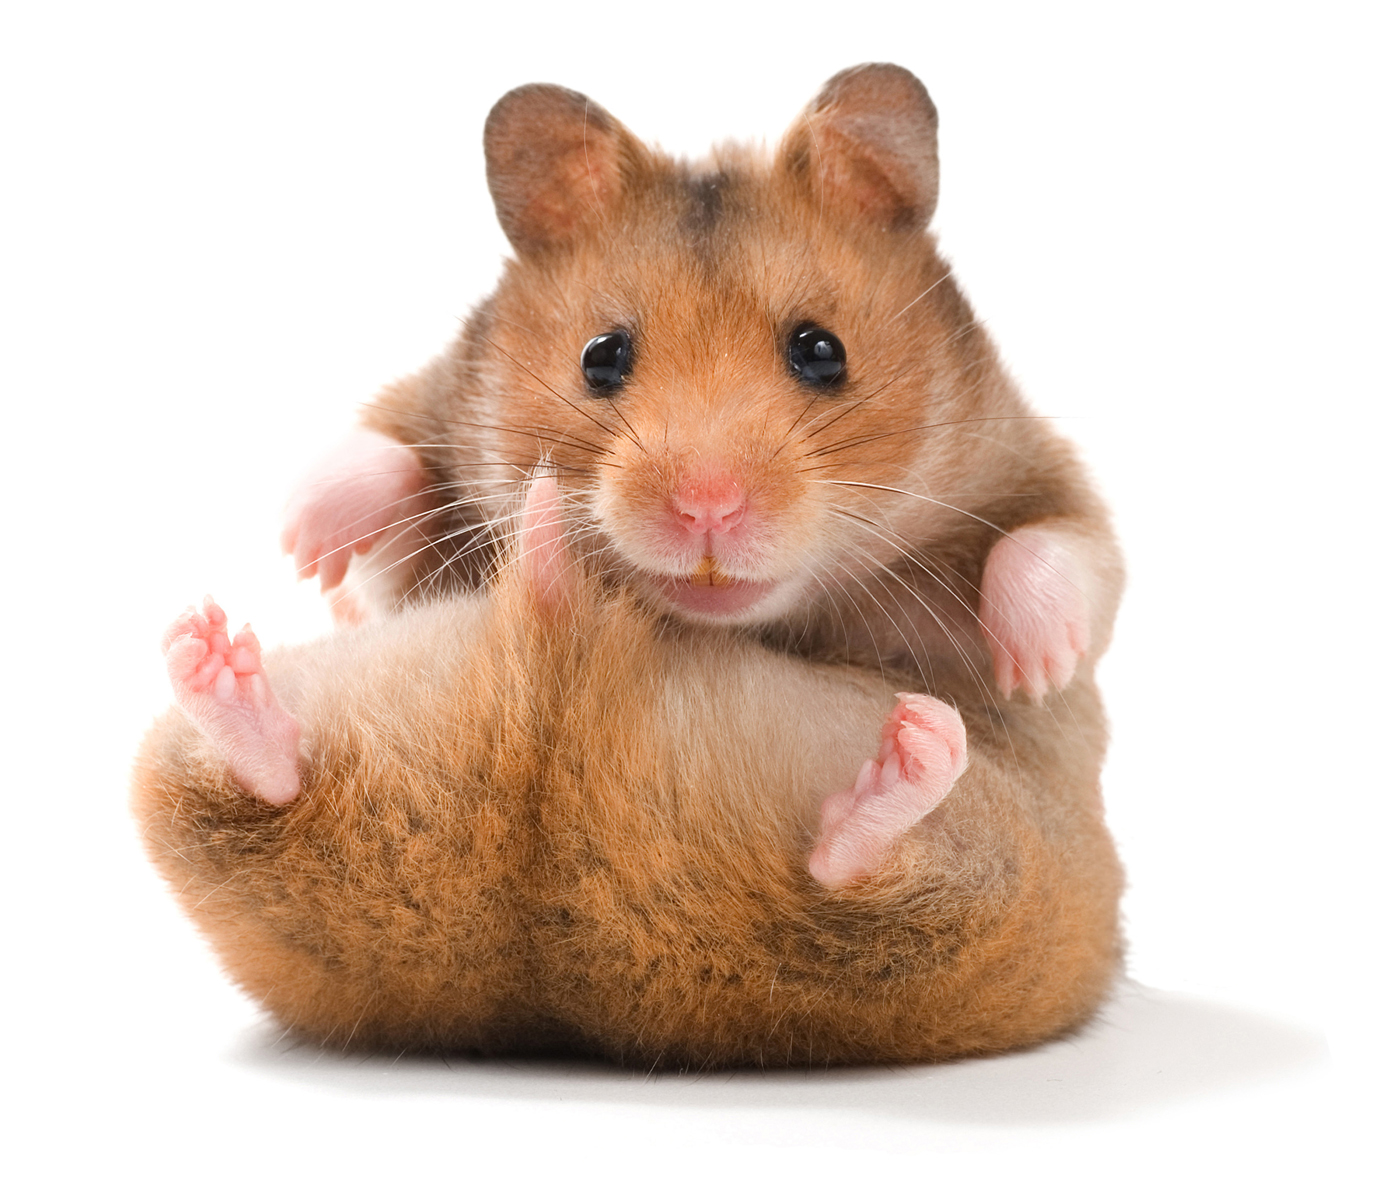 Firefighter Performs Life Saving CPR on a Hamster Kindness Blog 1400x1200